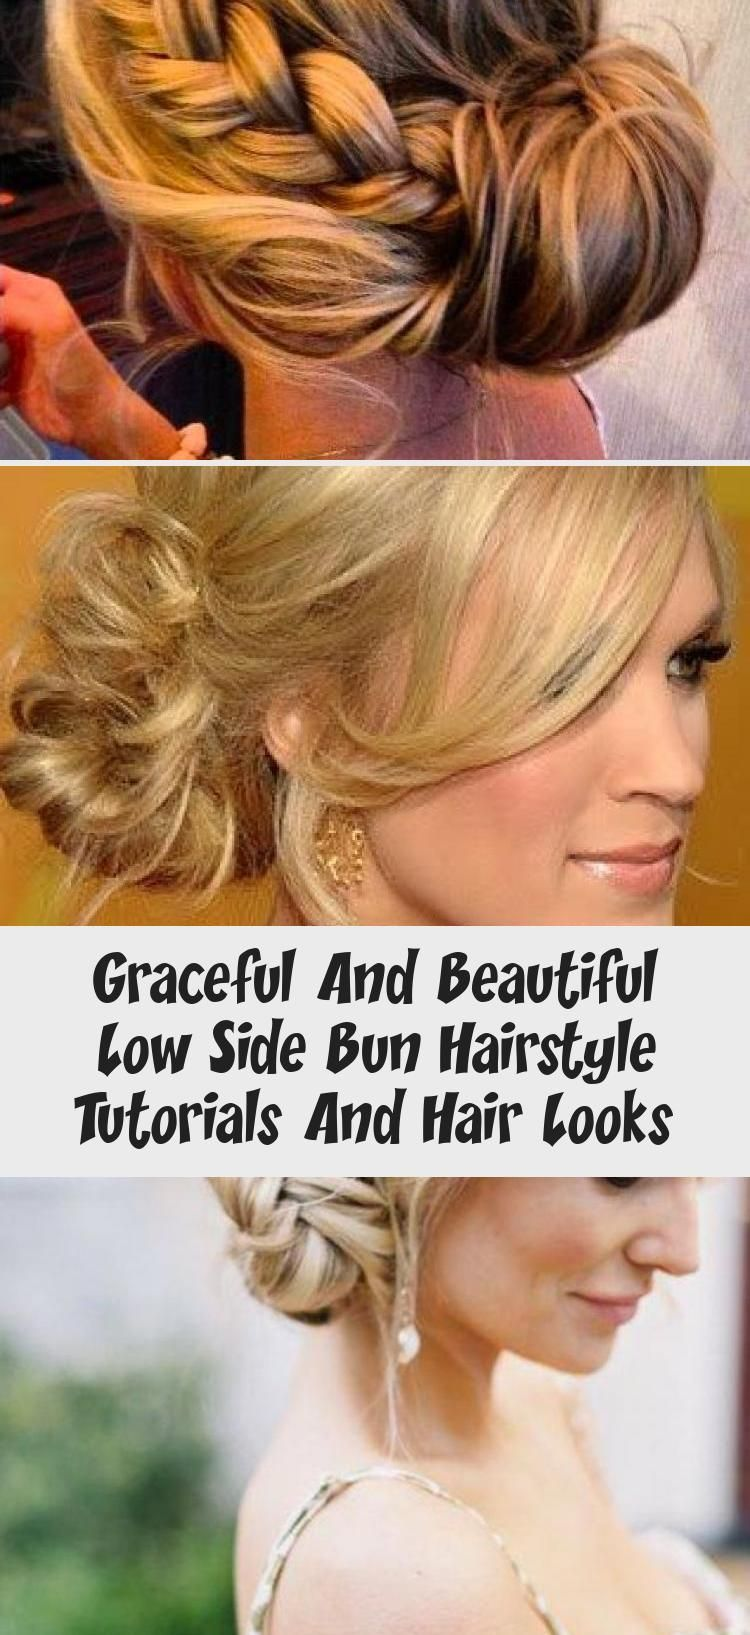 Graceful And Beautiful Low Side Bun Hairstyle Tutorials And Hair Looks #lowsidebuns Graceful Lower Side Bun Hairstyle for Women                                                                                                                                                                                 More #weddinghairsimple #bridesmaidhairTutorial #Juniorbridesmaidhair #bridesmaidhairGypsophila #bridesmaidhairLob #Uniquebridesmaidhair #lowsidebuns